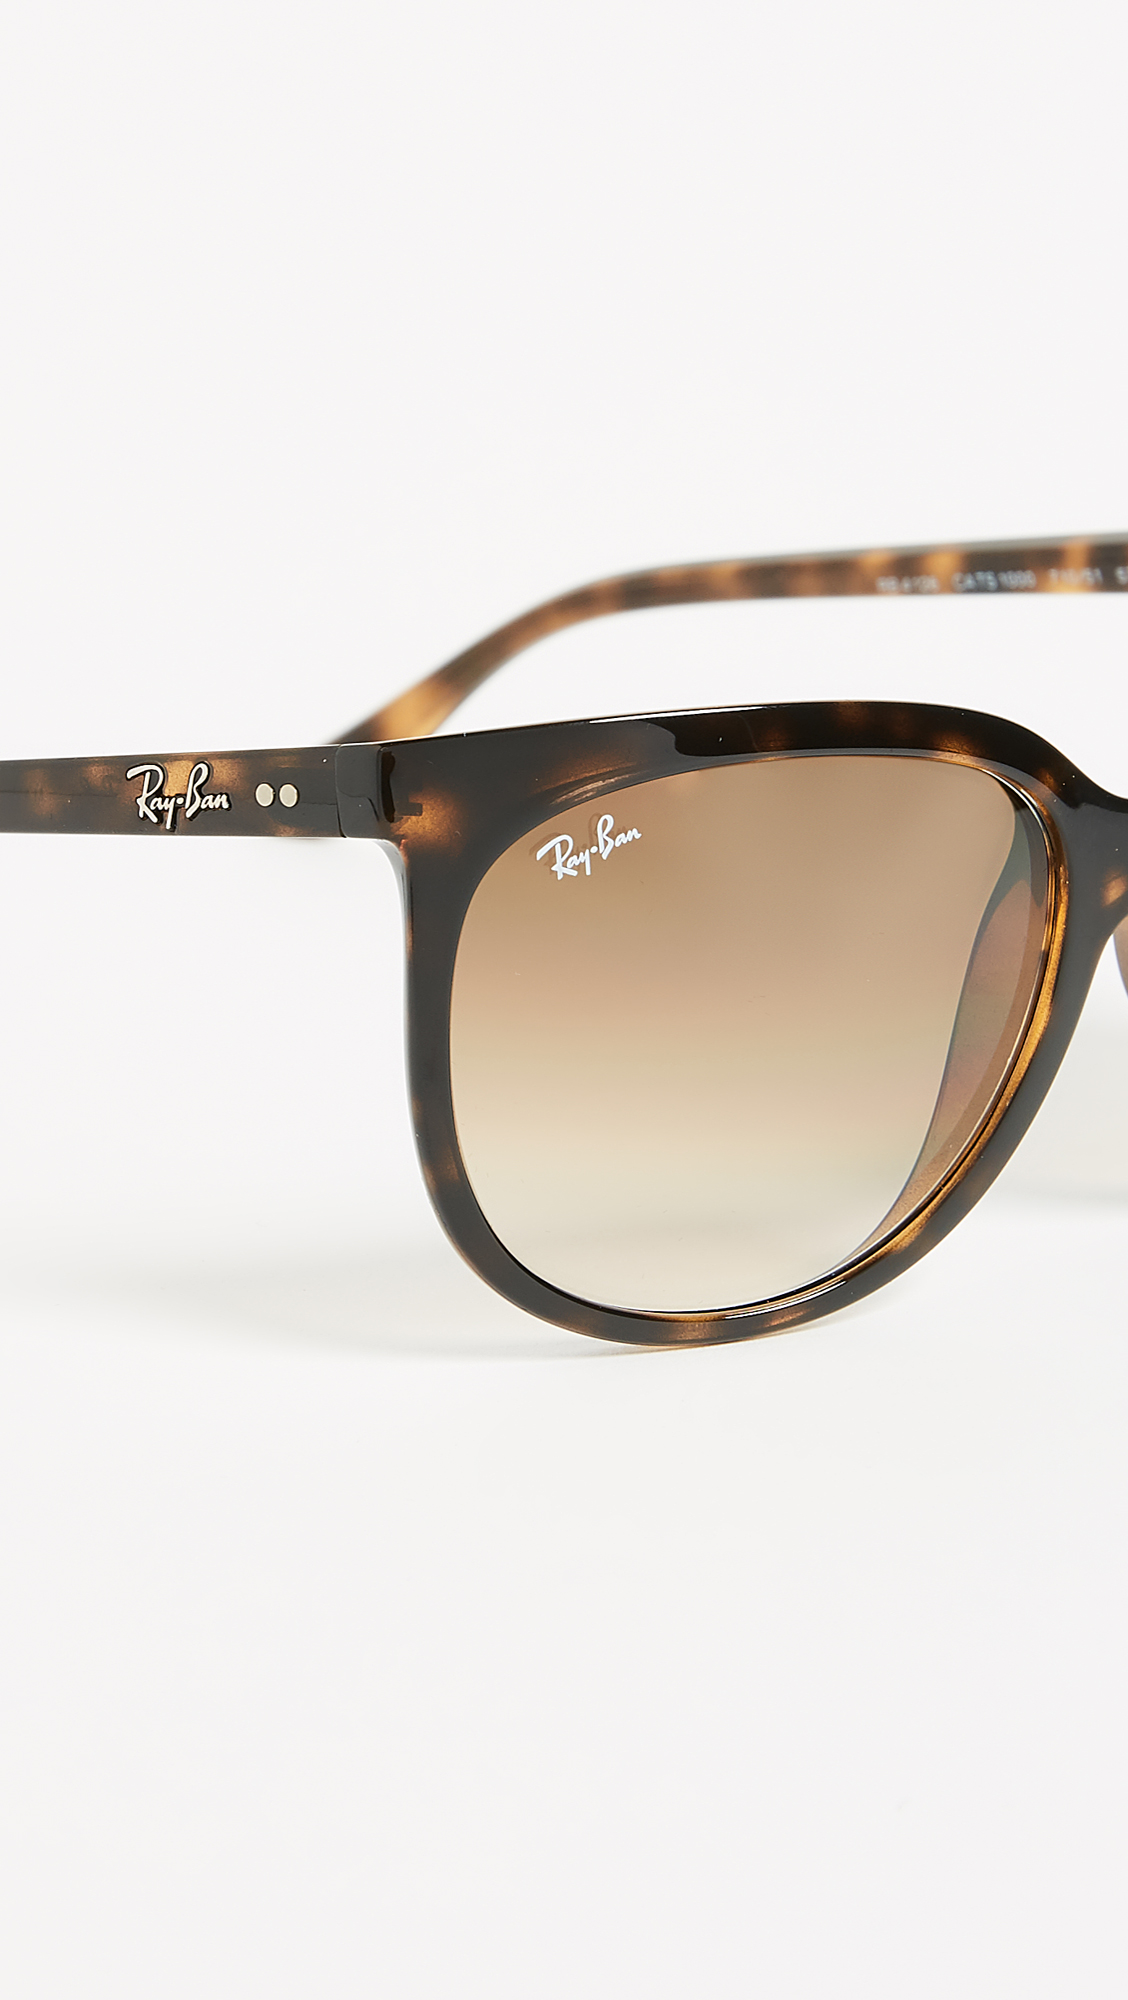 897efff7c49247 ... spain ray ban cats 1000 sunglasses shopbop 98325 115aa